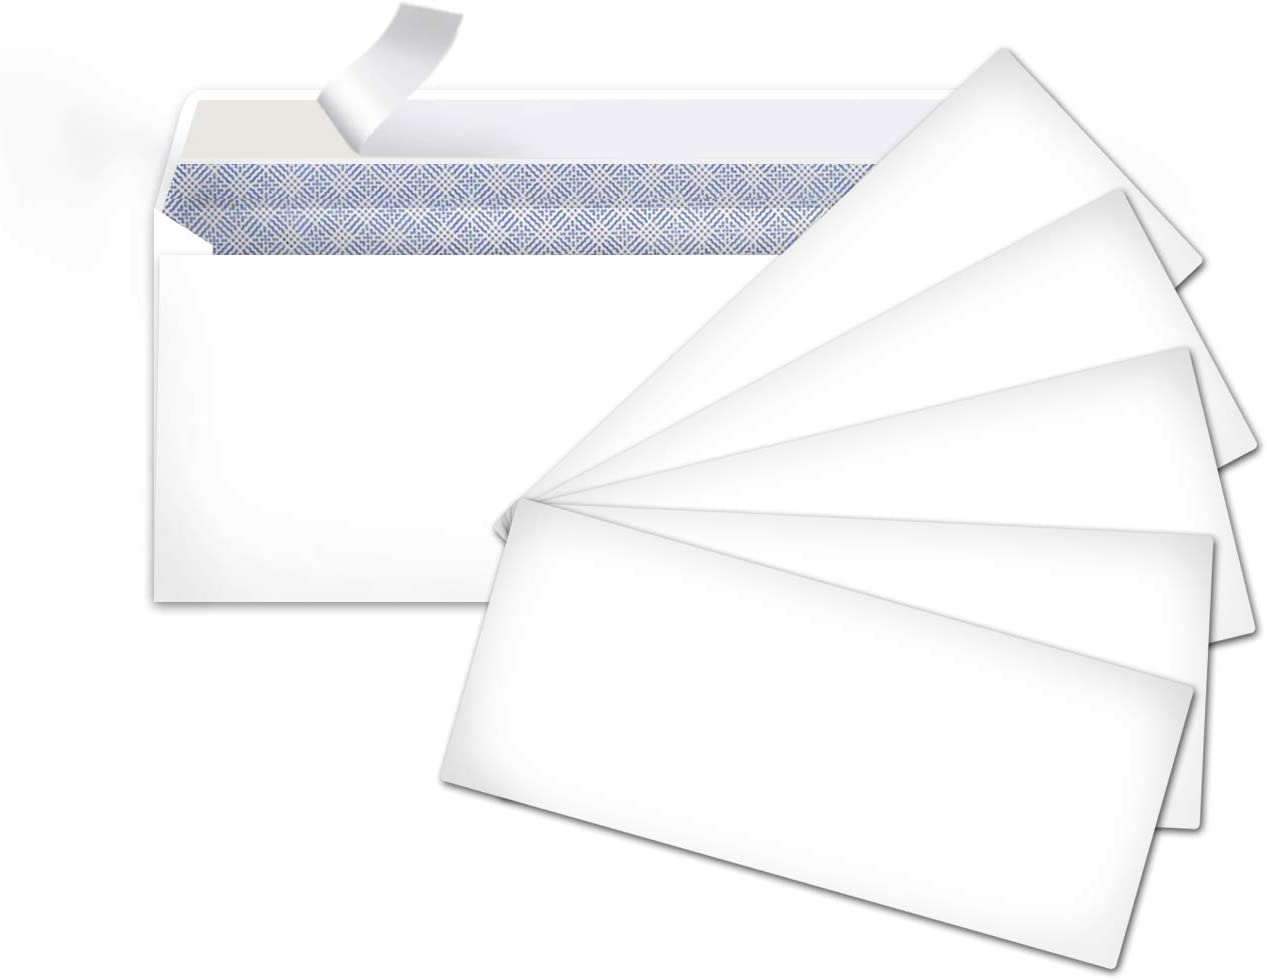 Basics #10 Security-Tinted Envelopes with Peel & Seal, White, 500-Pack - AMZP5 : Office Products